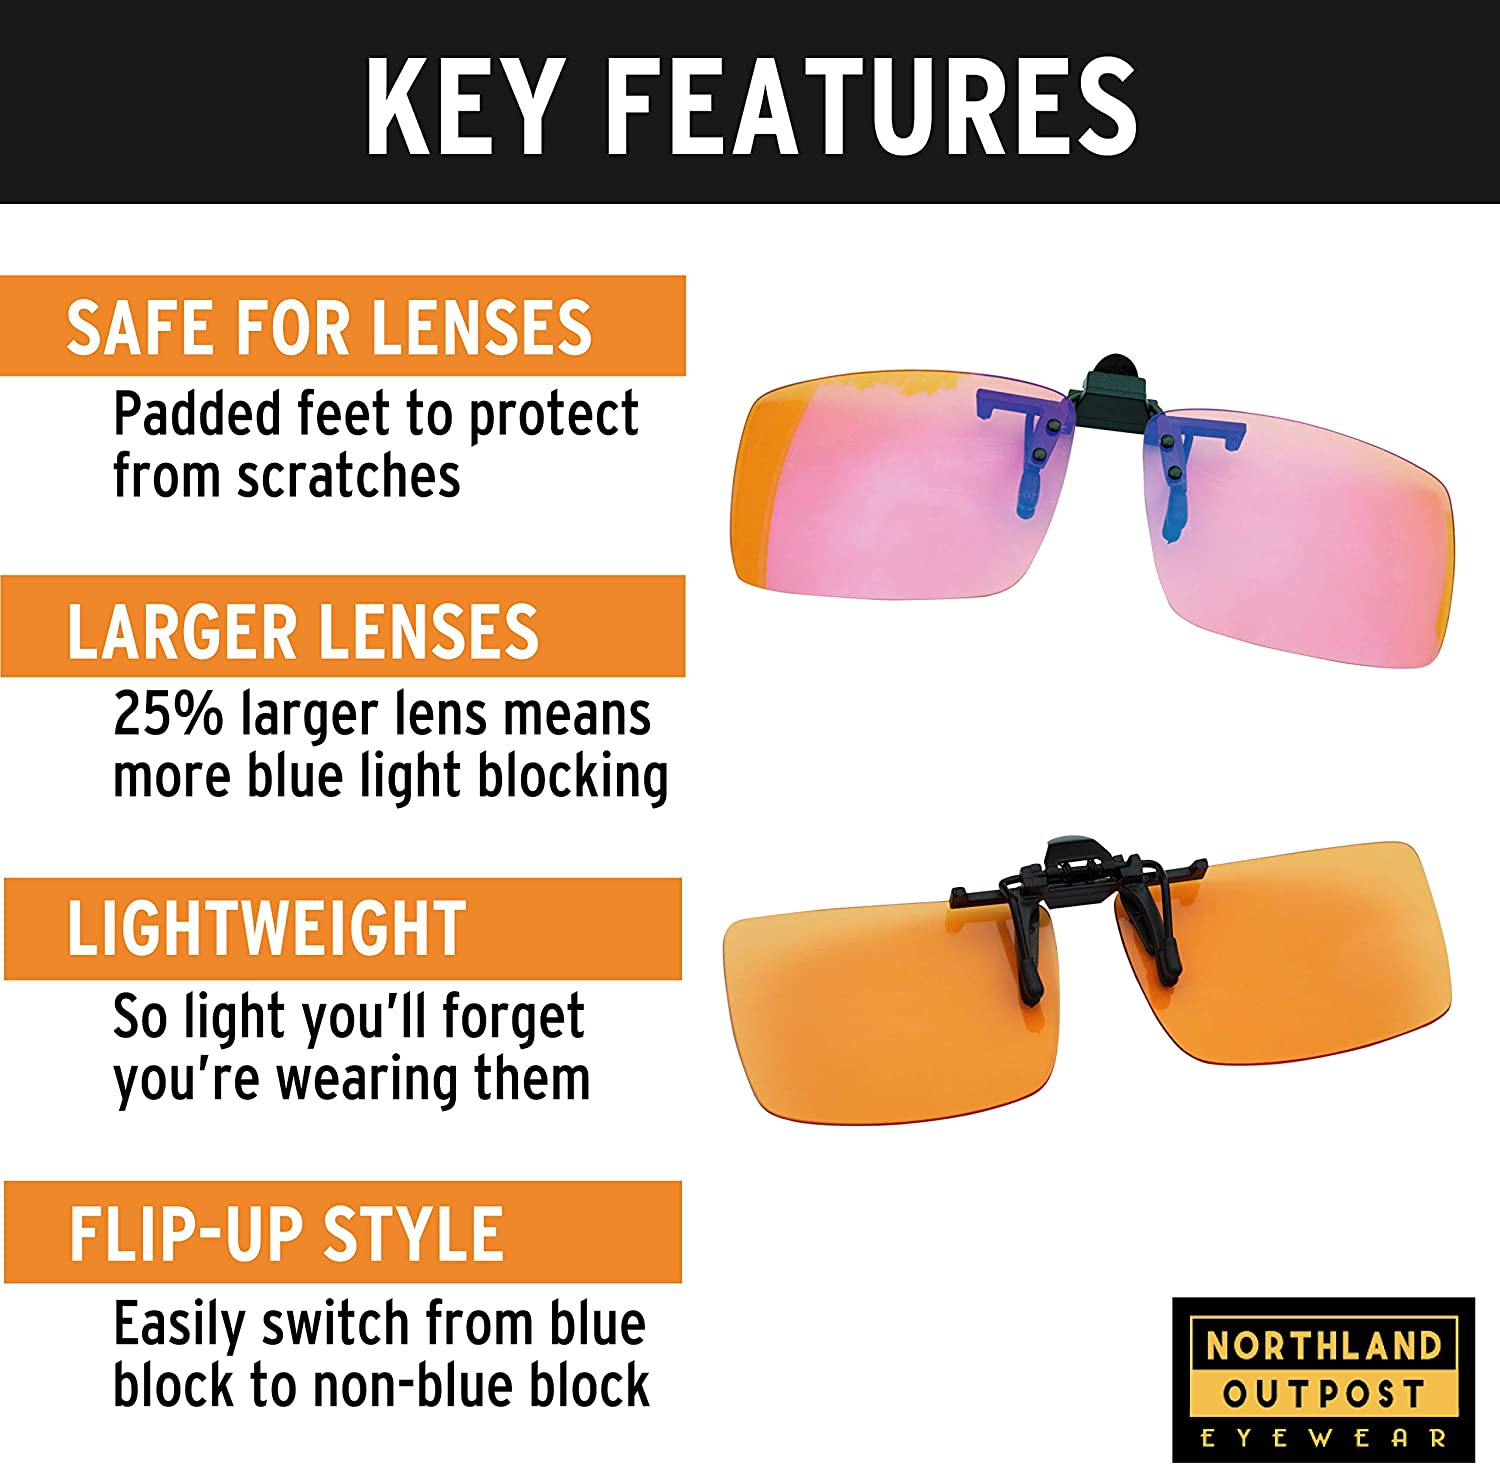 Portable Transparent Shell Case Protector Box For Clip-on Flip-up Lens Glasses 3